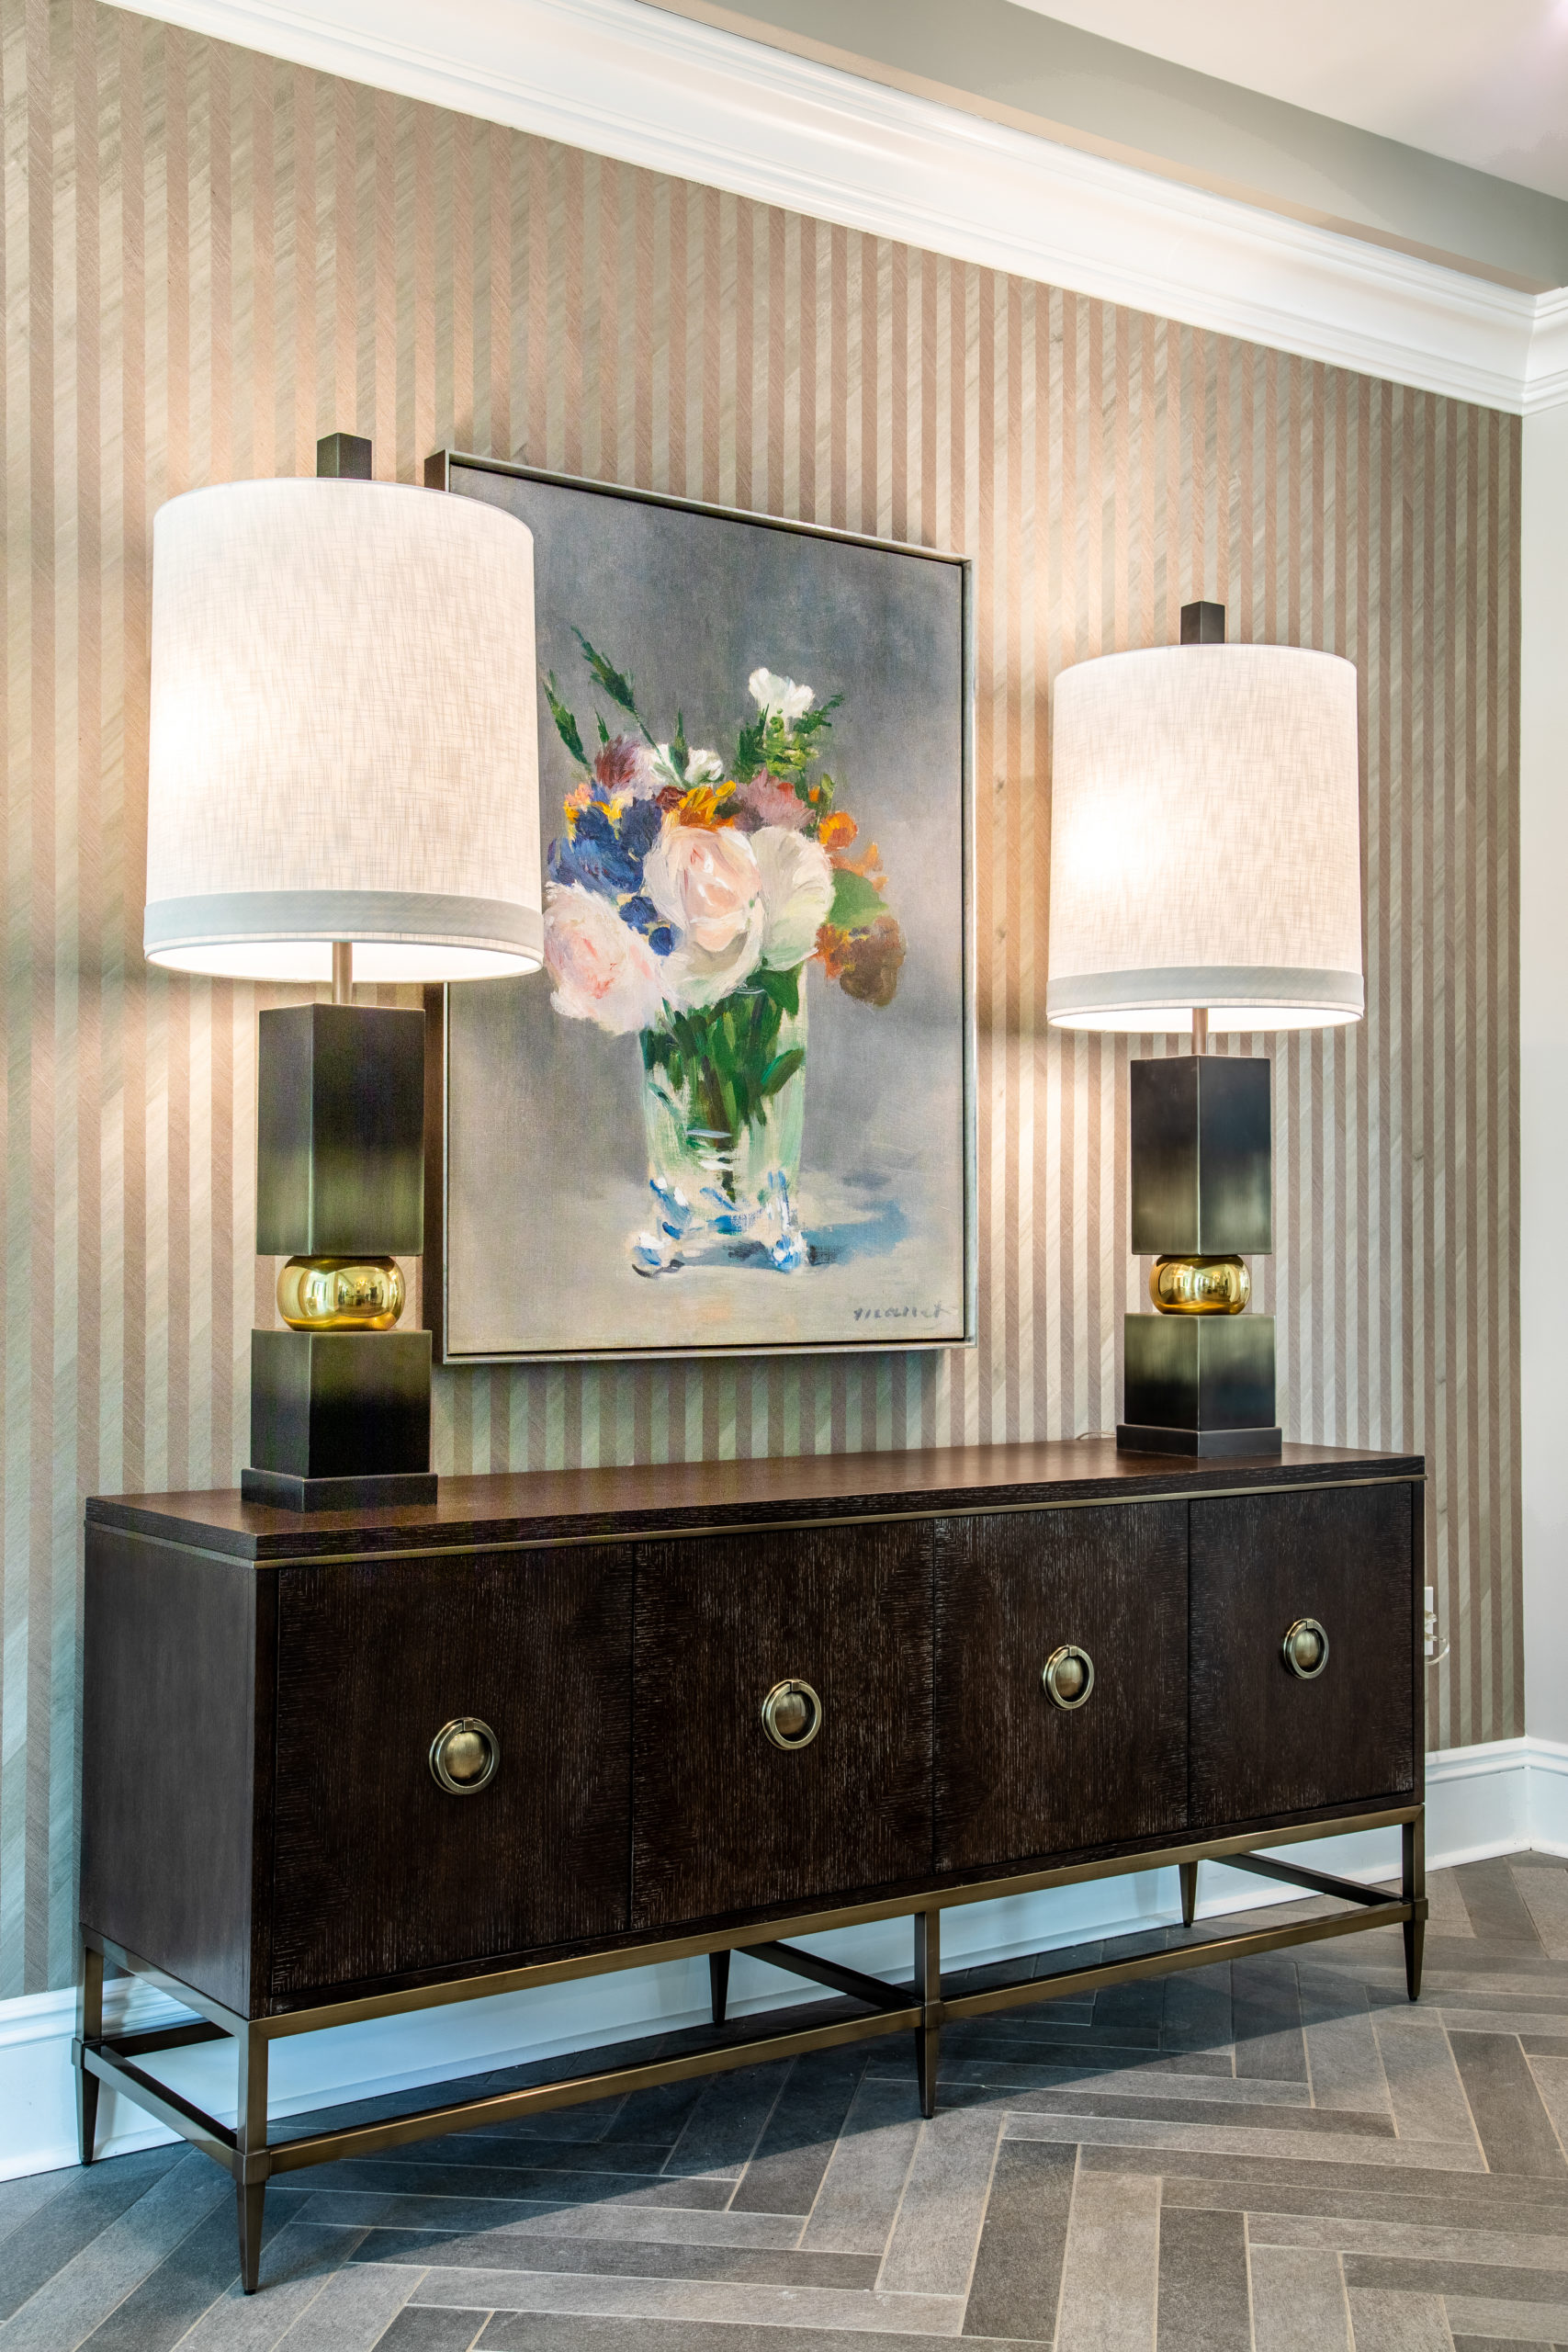 Brown table under framed floral art centered by two lamps with white shades in Longleaf common space